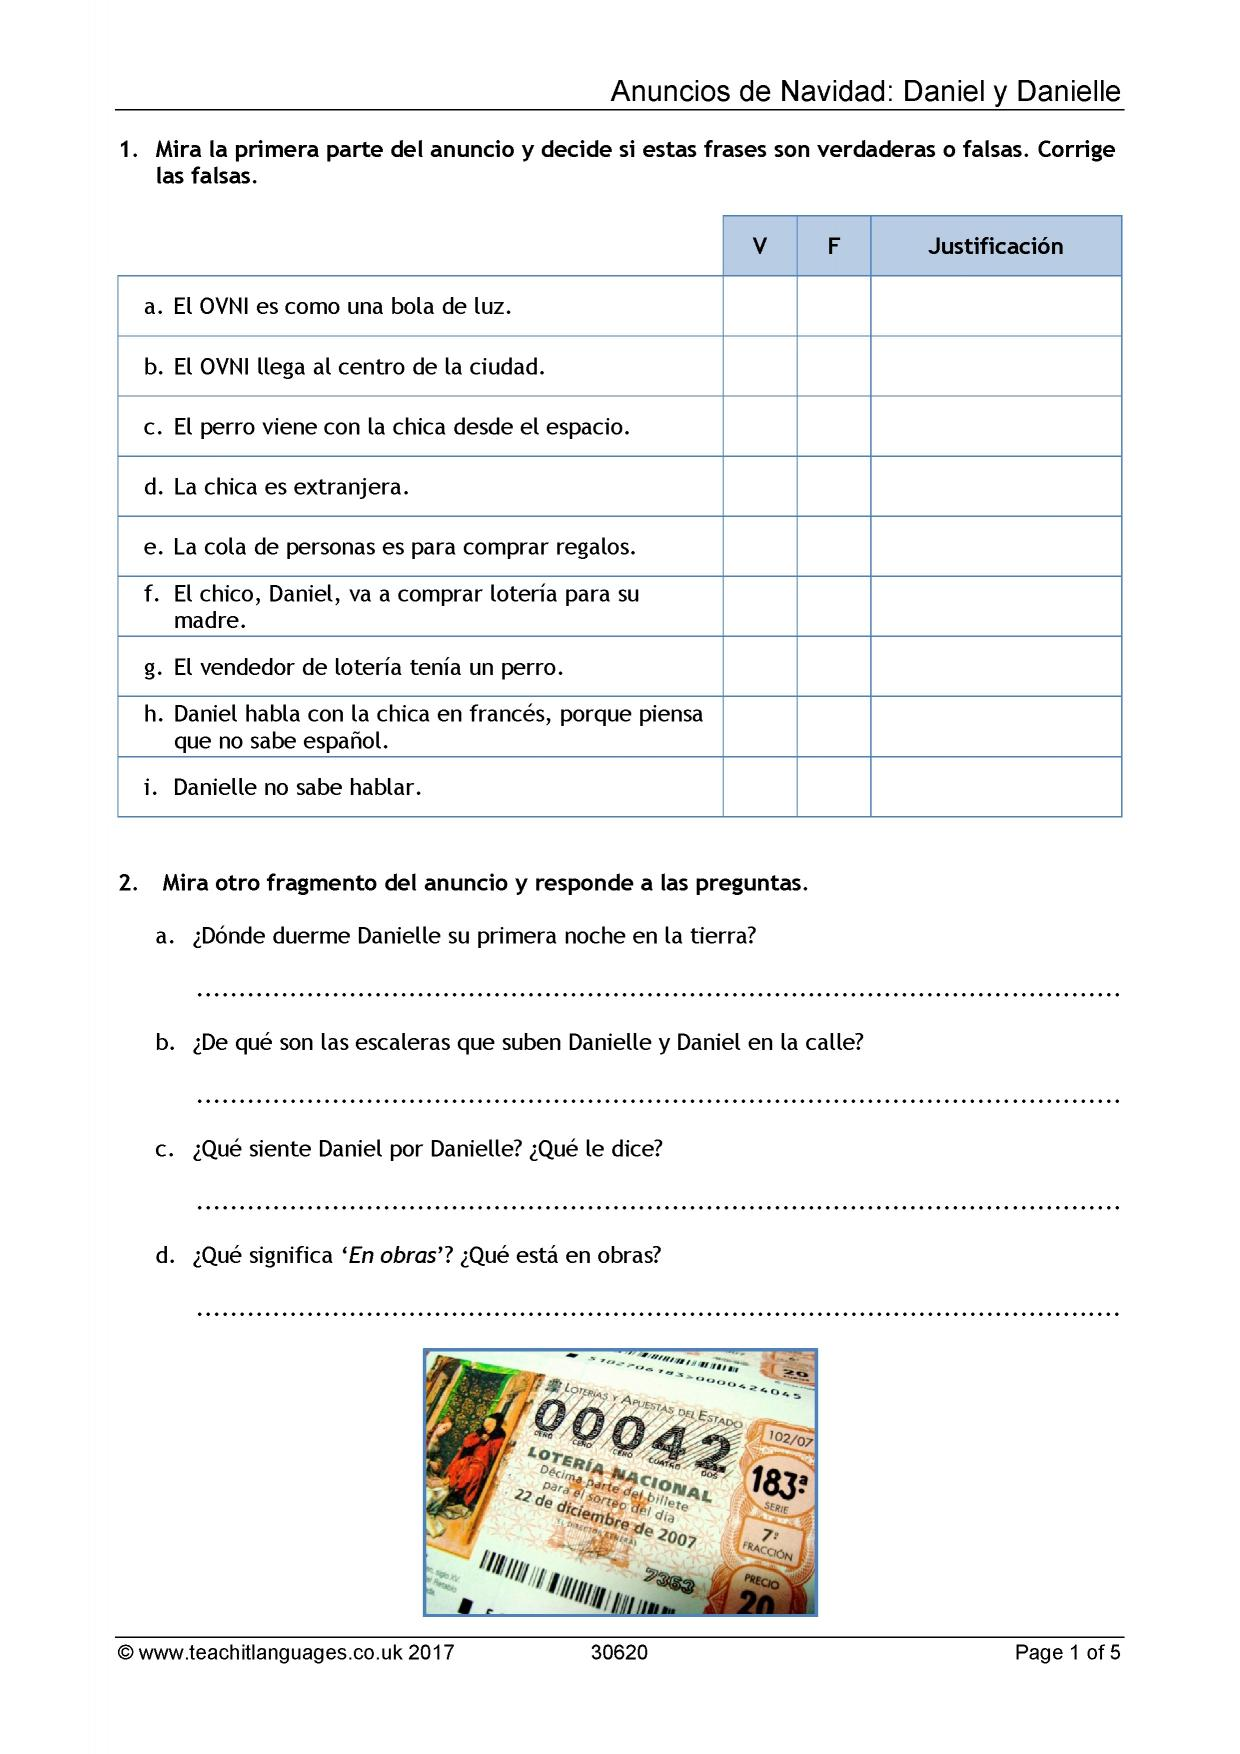 Spanish Language Teaching Resources